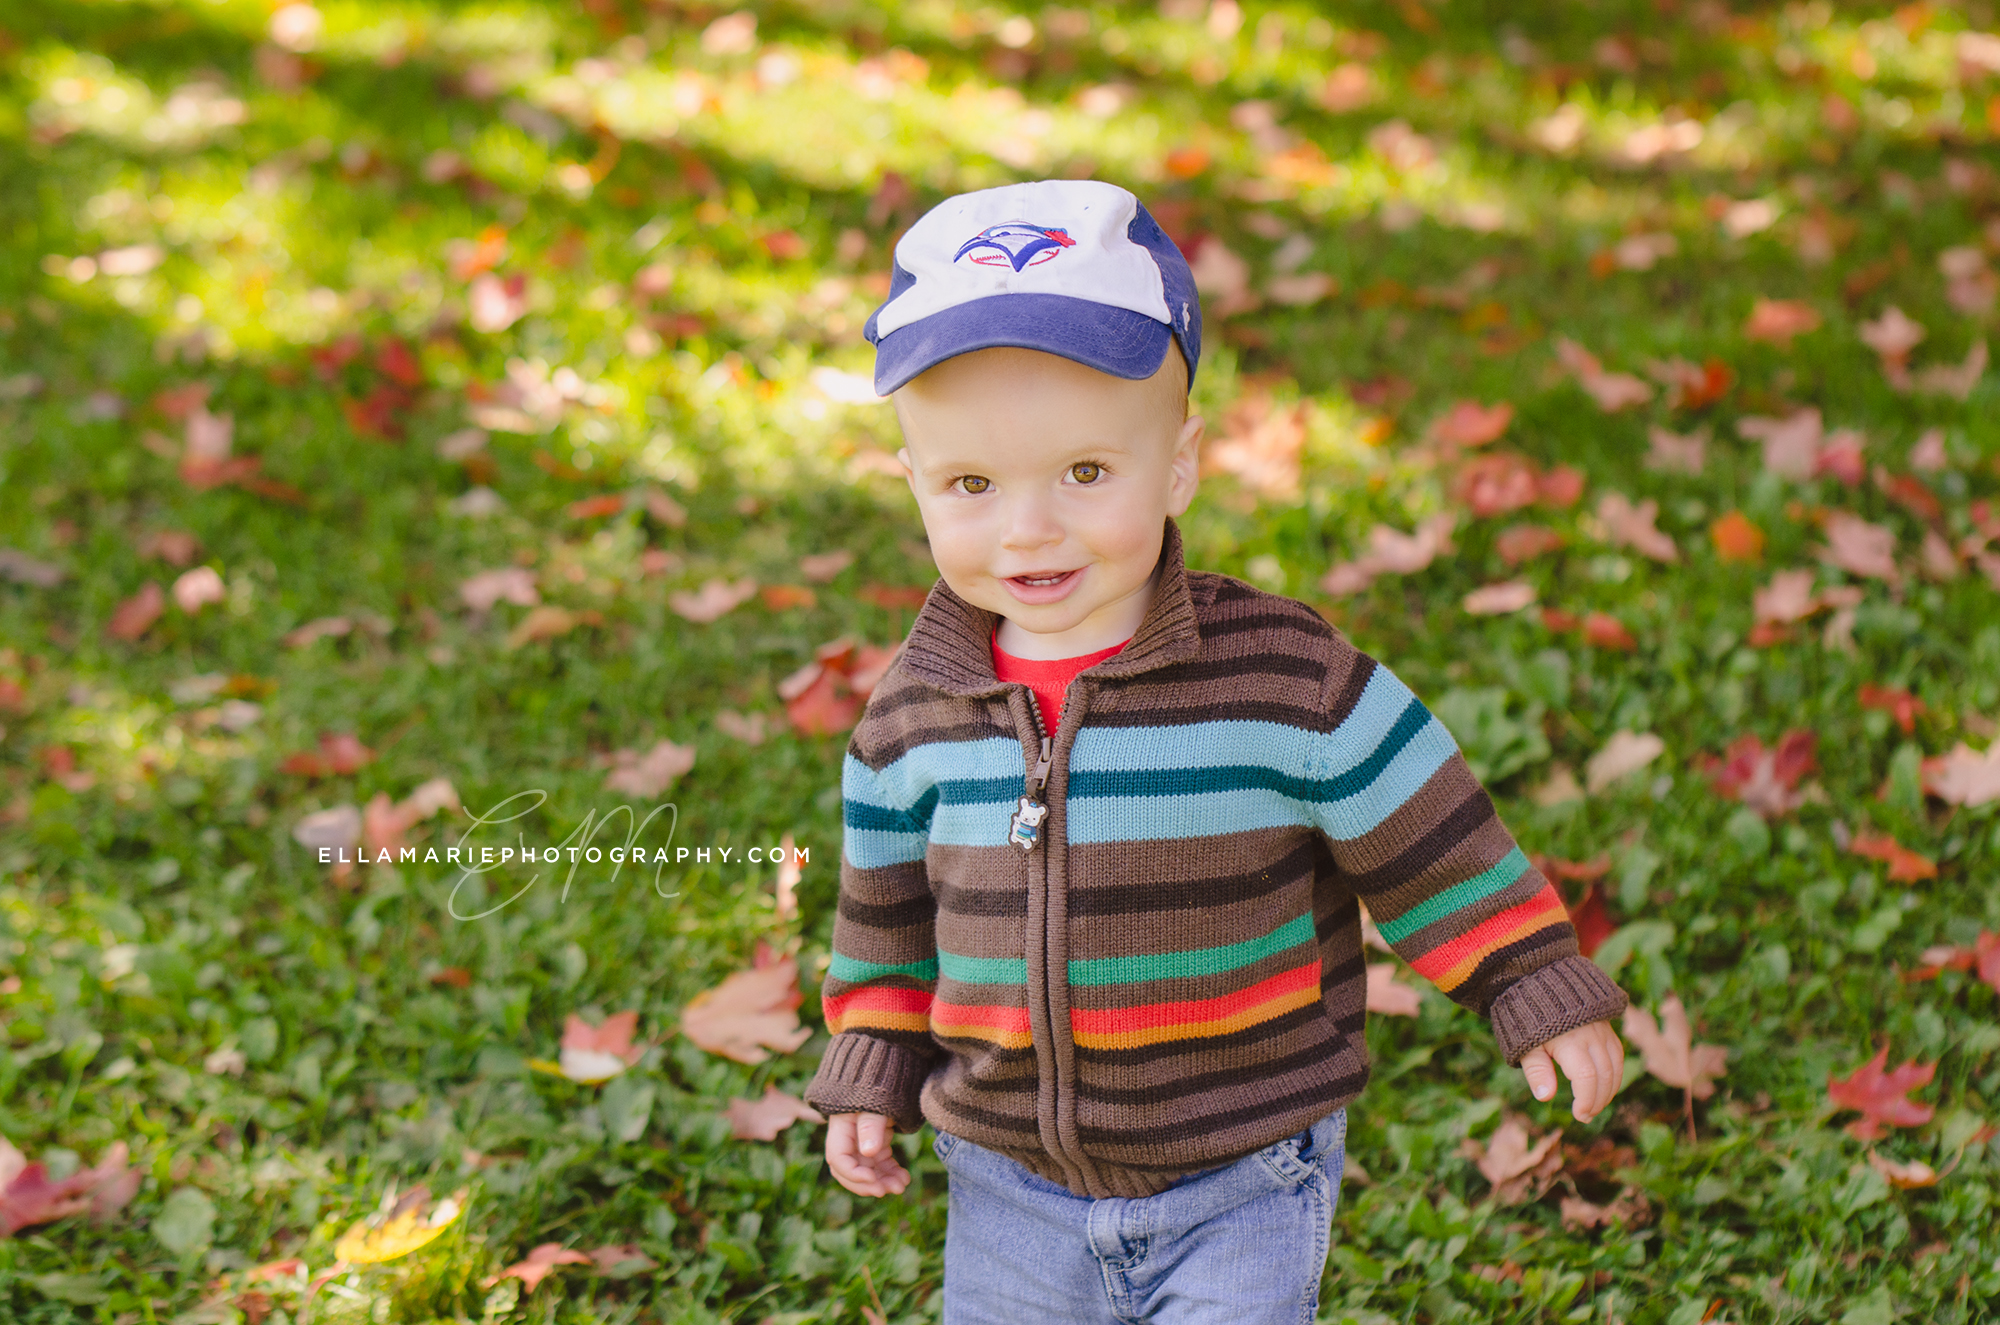 EllaMariePhotography_family_Baden_ON_New_Hamburg_Stratford_Waterloo_Kitchener_Guelph_Cambridge_Listowel_photographer_photography_06.jpg